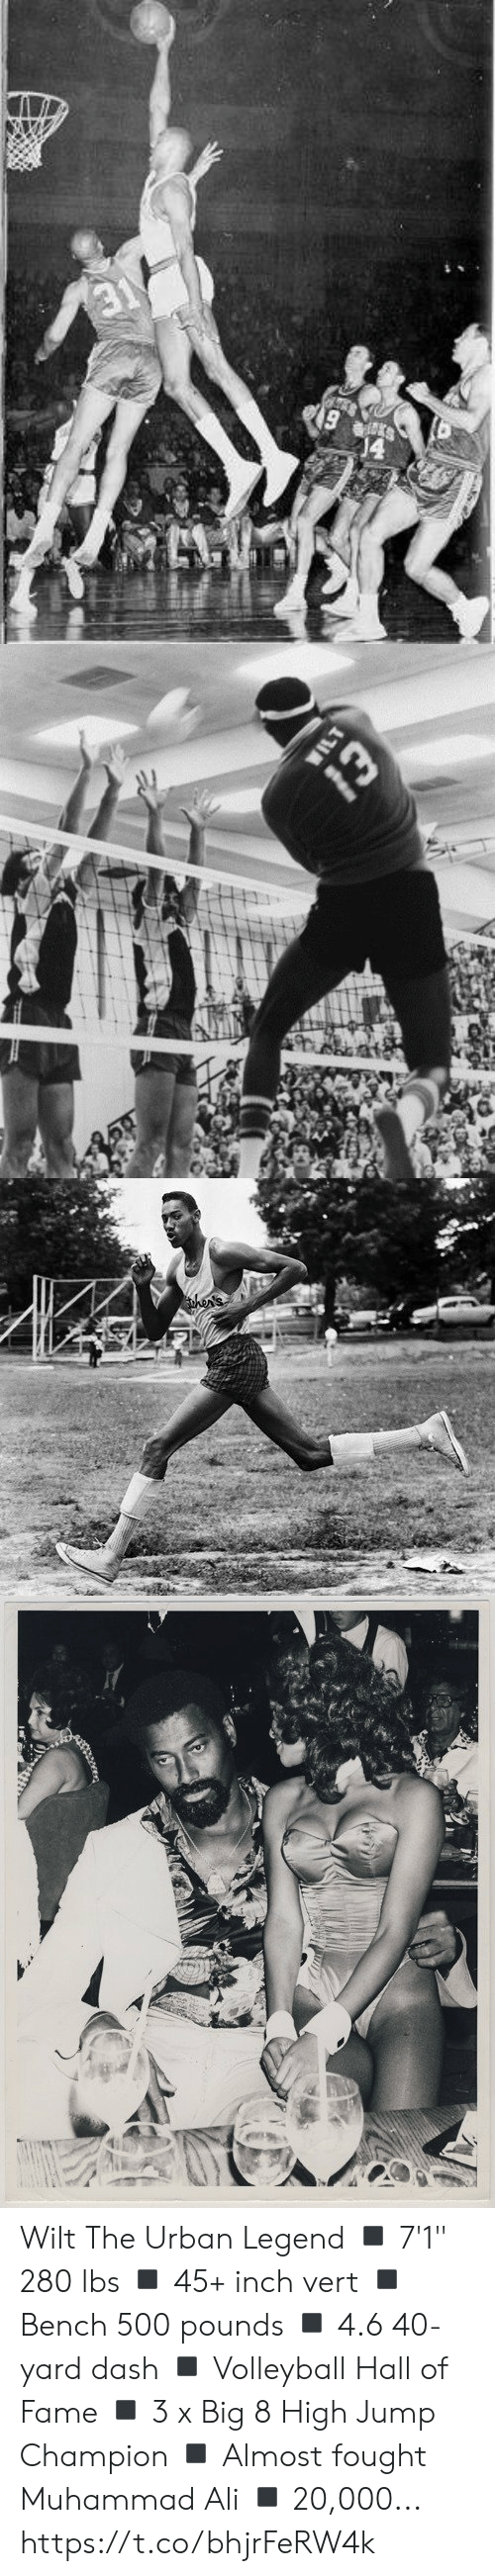 """Ali, Memes, and Muhammad Ali: 19   WILT  Whe   then's Wilt The Urban Legend  ◾️ 7'1"""" 280 lbs ◾️ 45+ inch vert ◾️ Bench 500 pounds ◾️ 4.6 40-yard dash ◾️ Volleyball Hall of Fame ◾️ 3 x Big 8 High Jump Champion ◾️ Almost fought Muhammad Ali ◾️ 20,000... https://t.co/bhjrFeRW4k"""